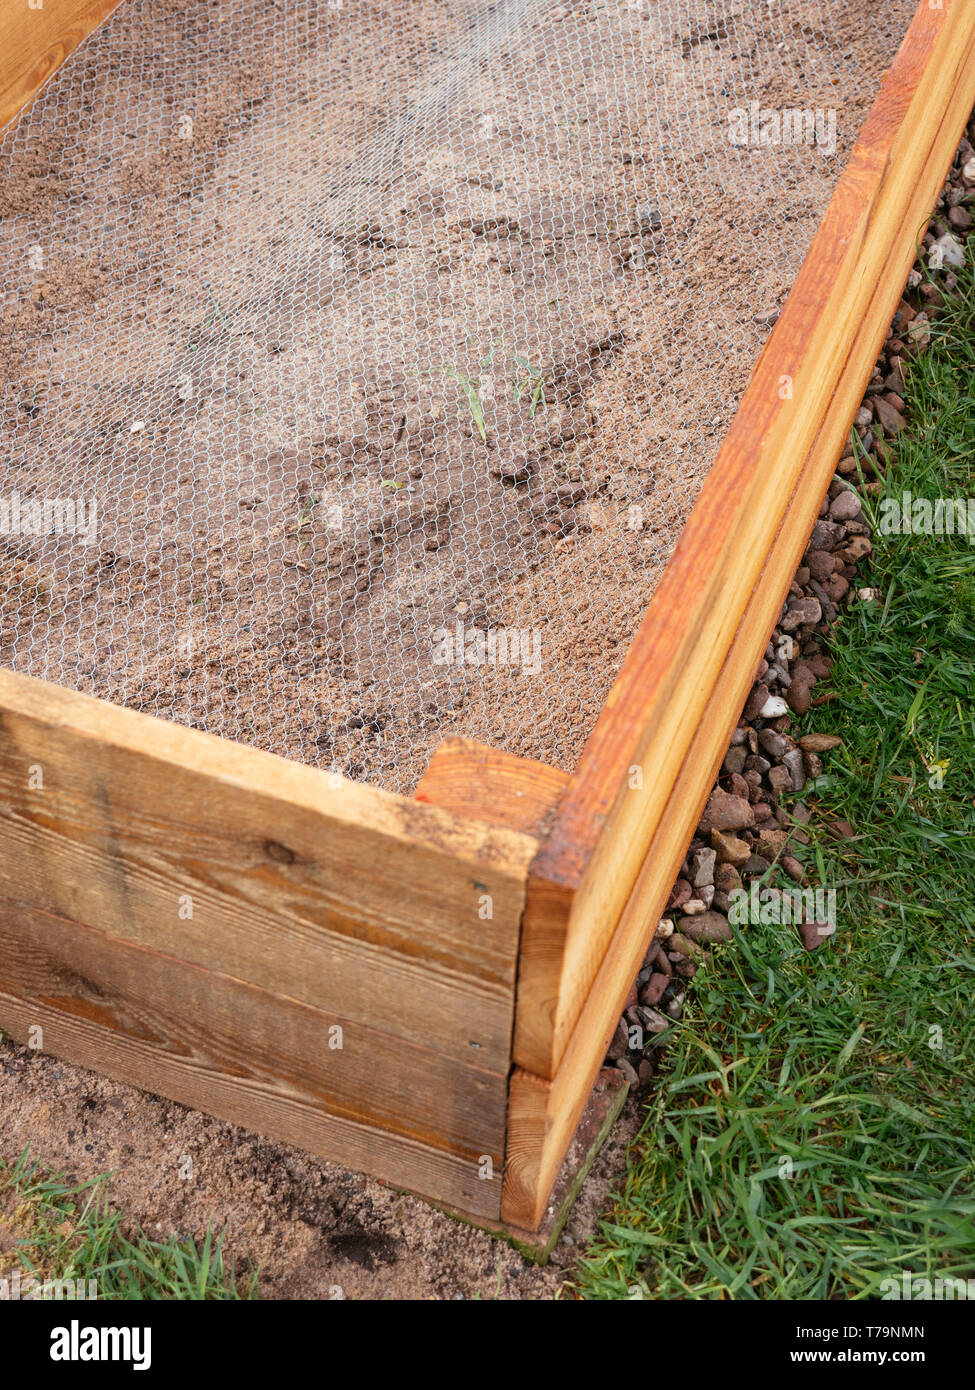 Raised bed lined with chicken wire to keep gophers, voles and moles out. Stock Photo